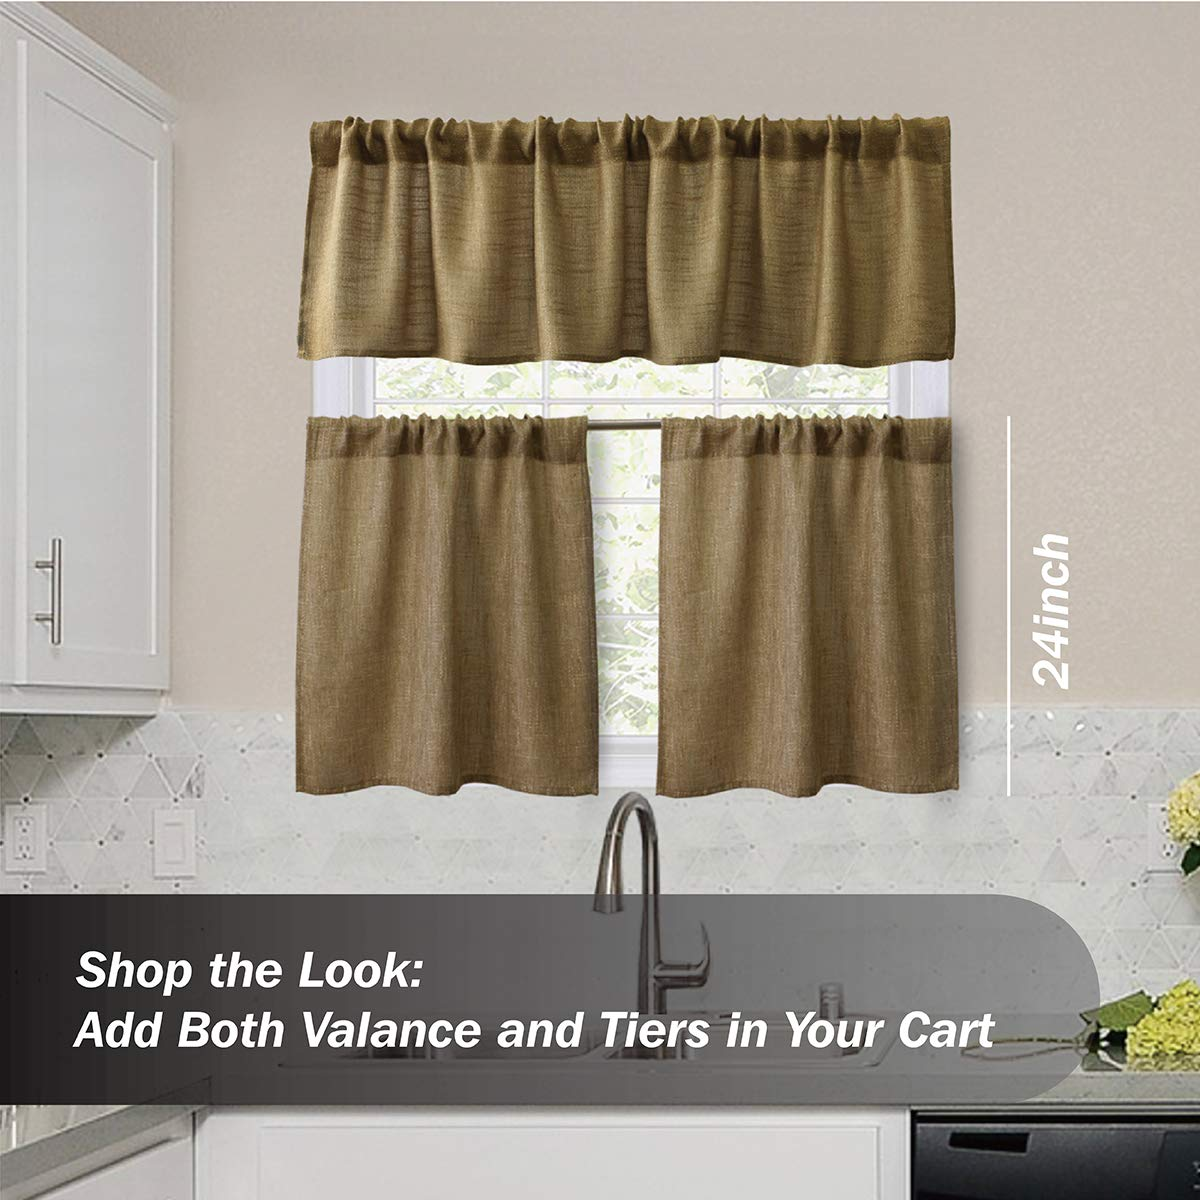 Set of 2 Valea Home Burlap Tier Curtains for Kitchen Rustic Tan Rod Pocket Curtains for Short Window 24 inch Linen Cafe Curtains